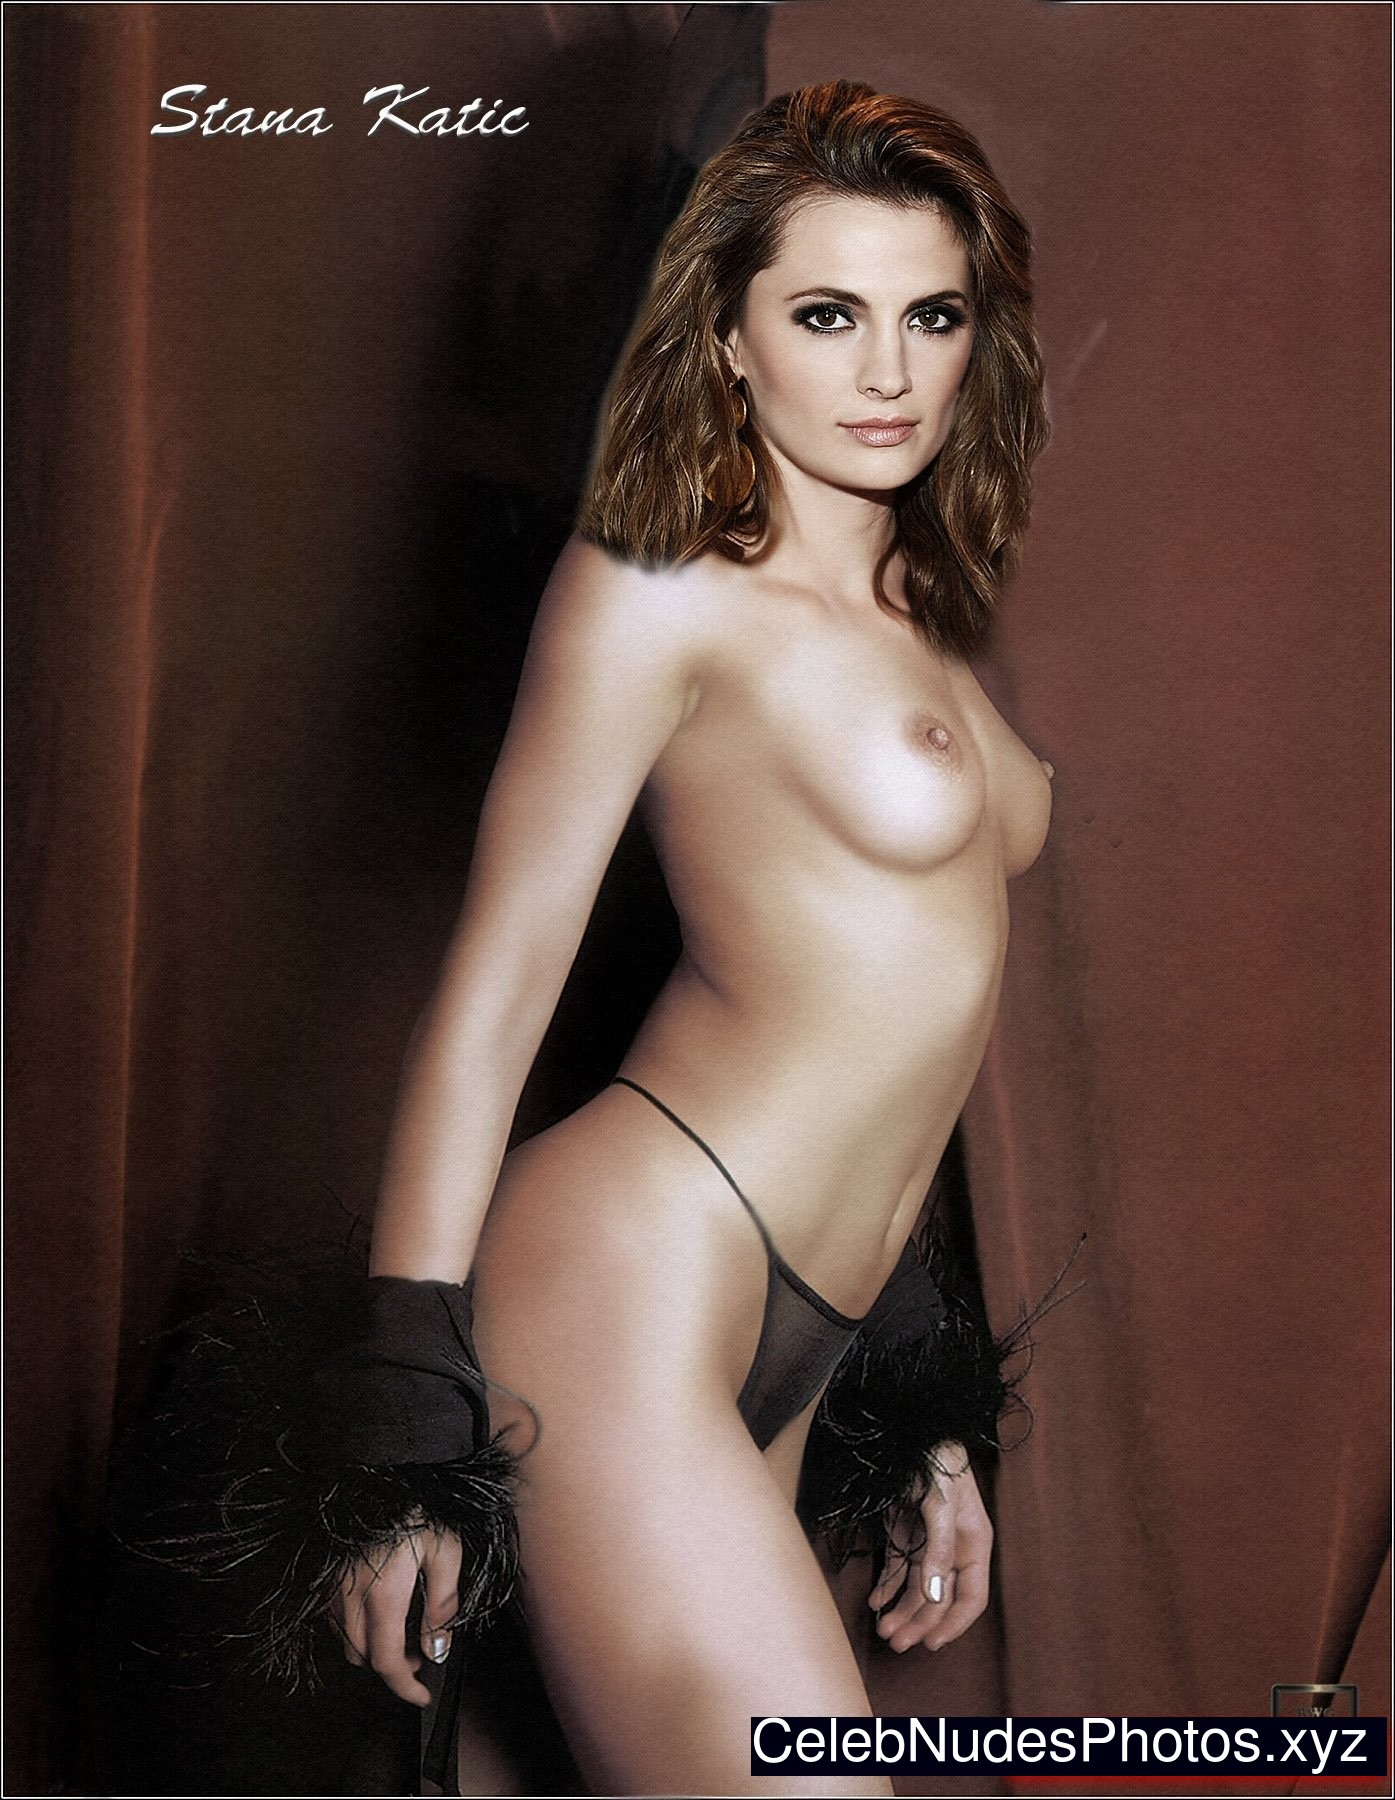 Katic stana naked of pictures